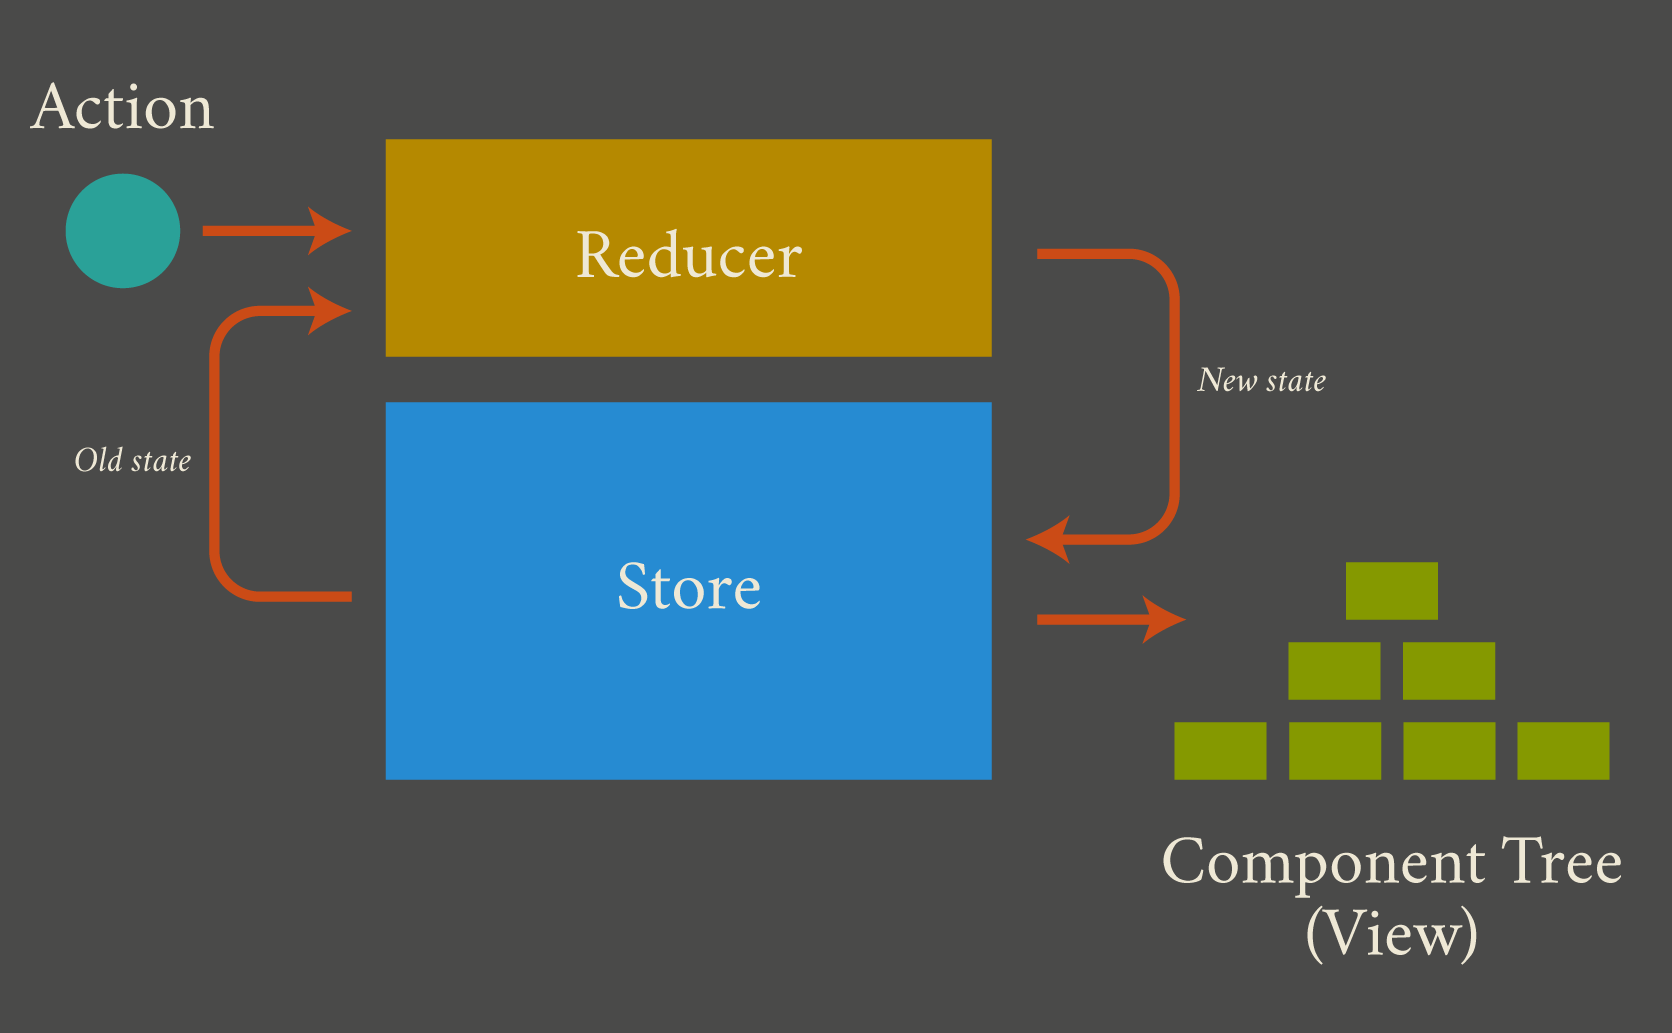 Redux data flow. Action and state go to the reducer. The reducer updates the store with new state, and passes it to the component tree.